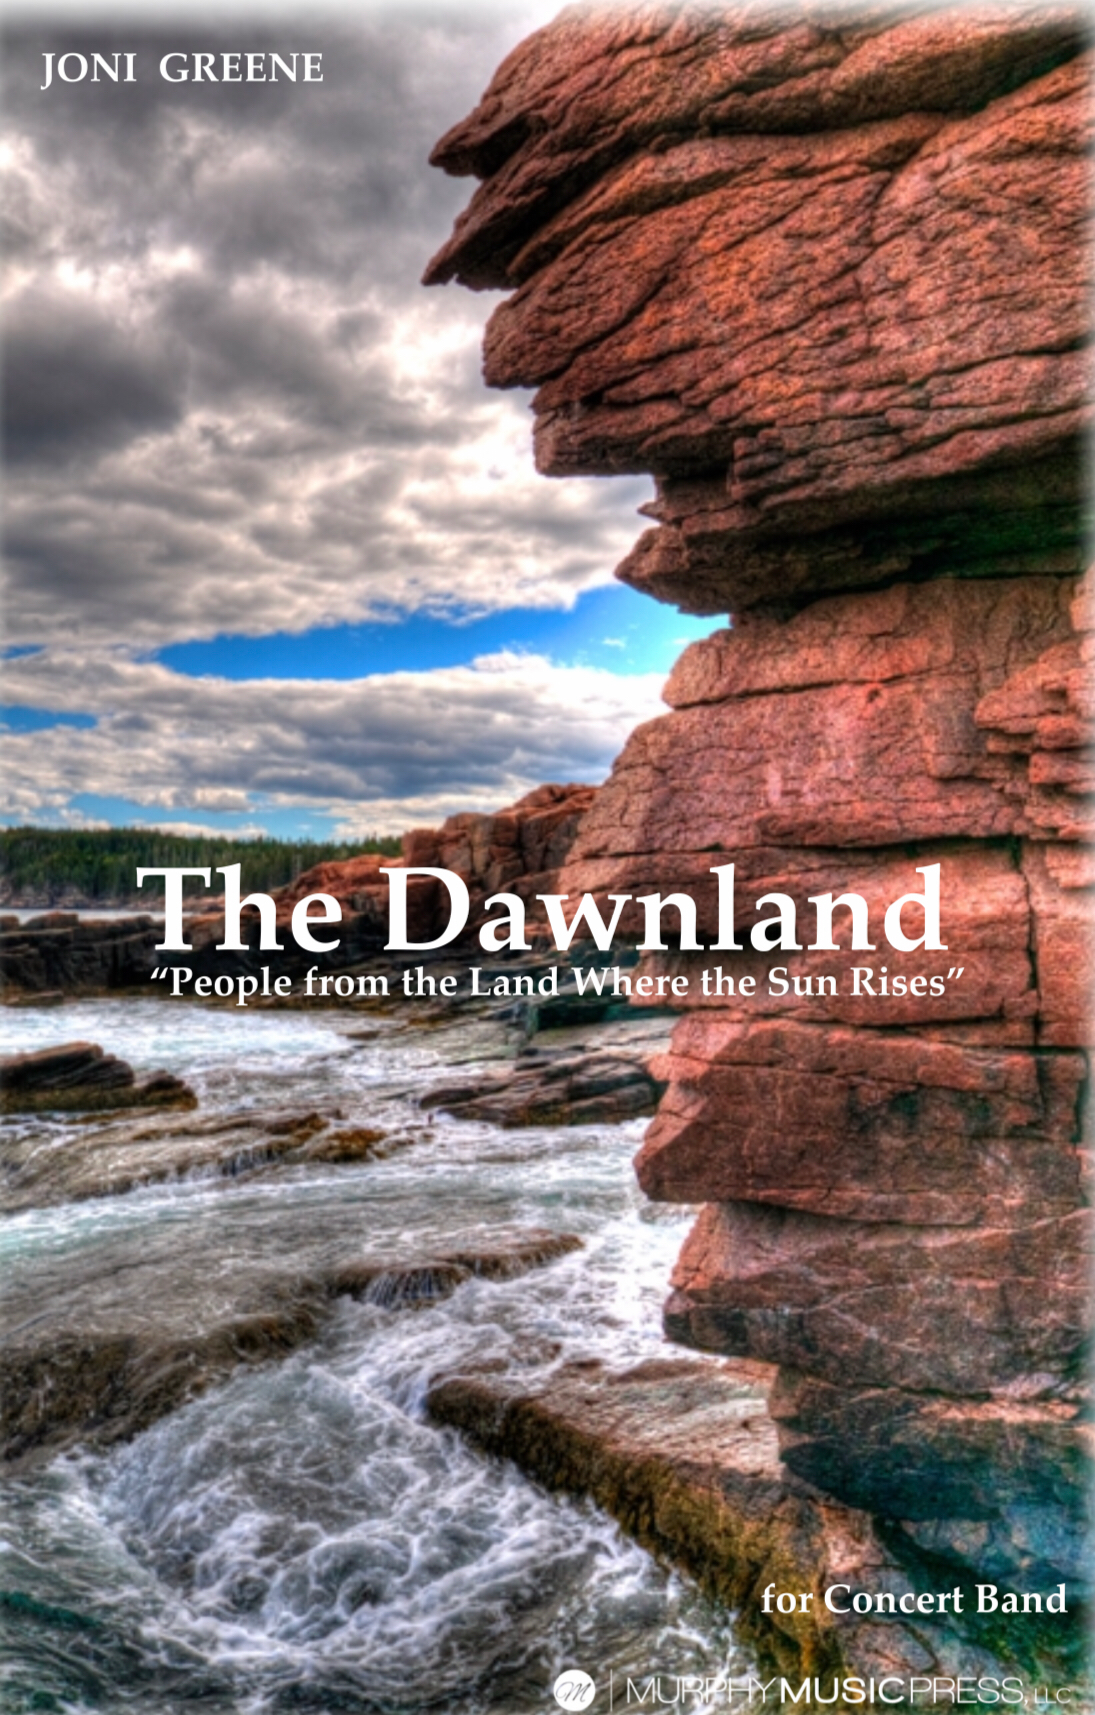 The Dawnland by Joni Greene